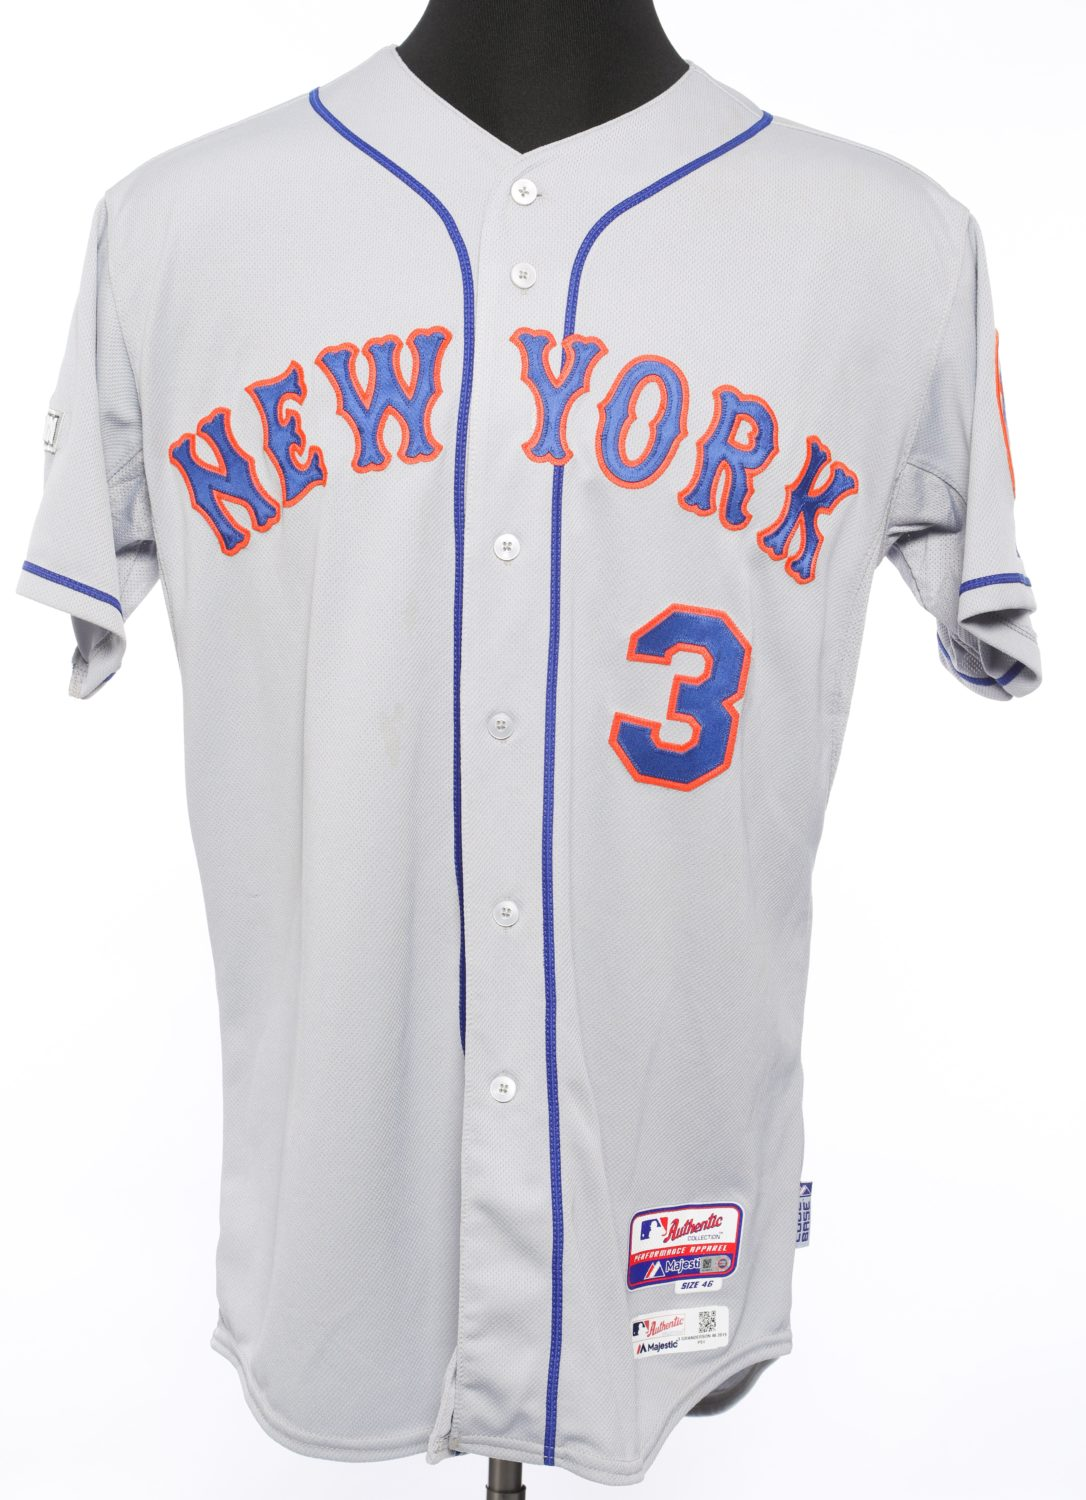 Curtis Granderson 2015 NLDS Jersey - Front View